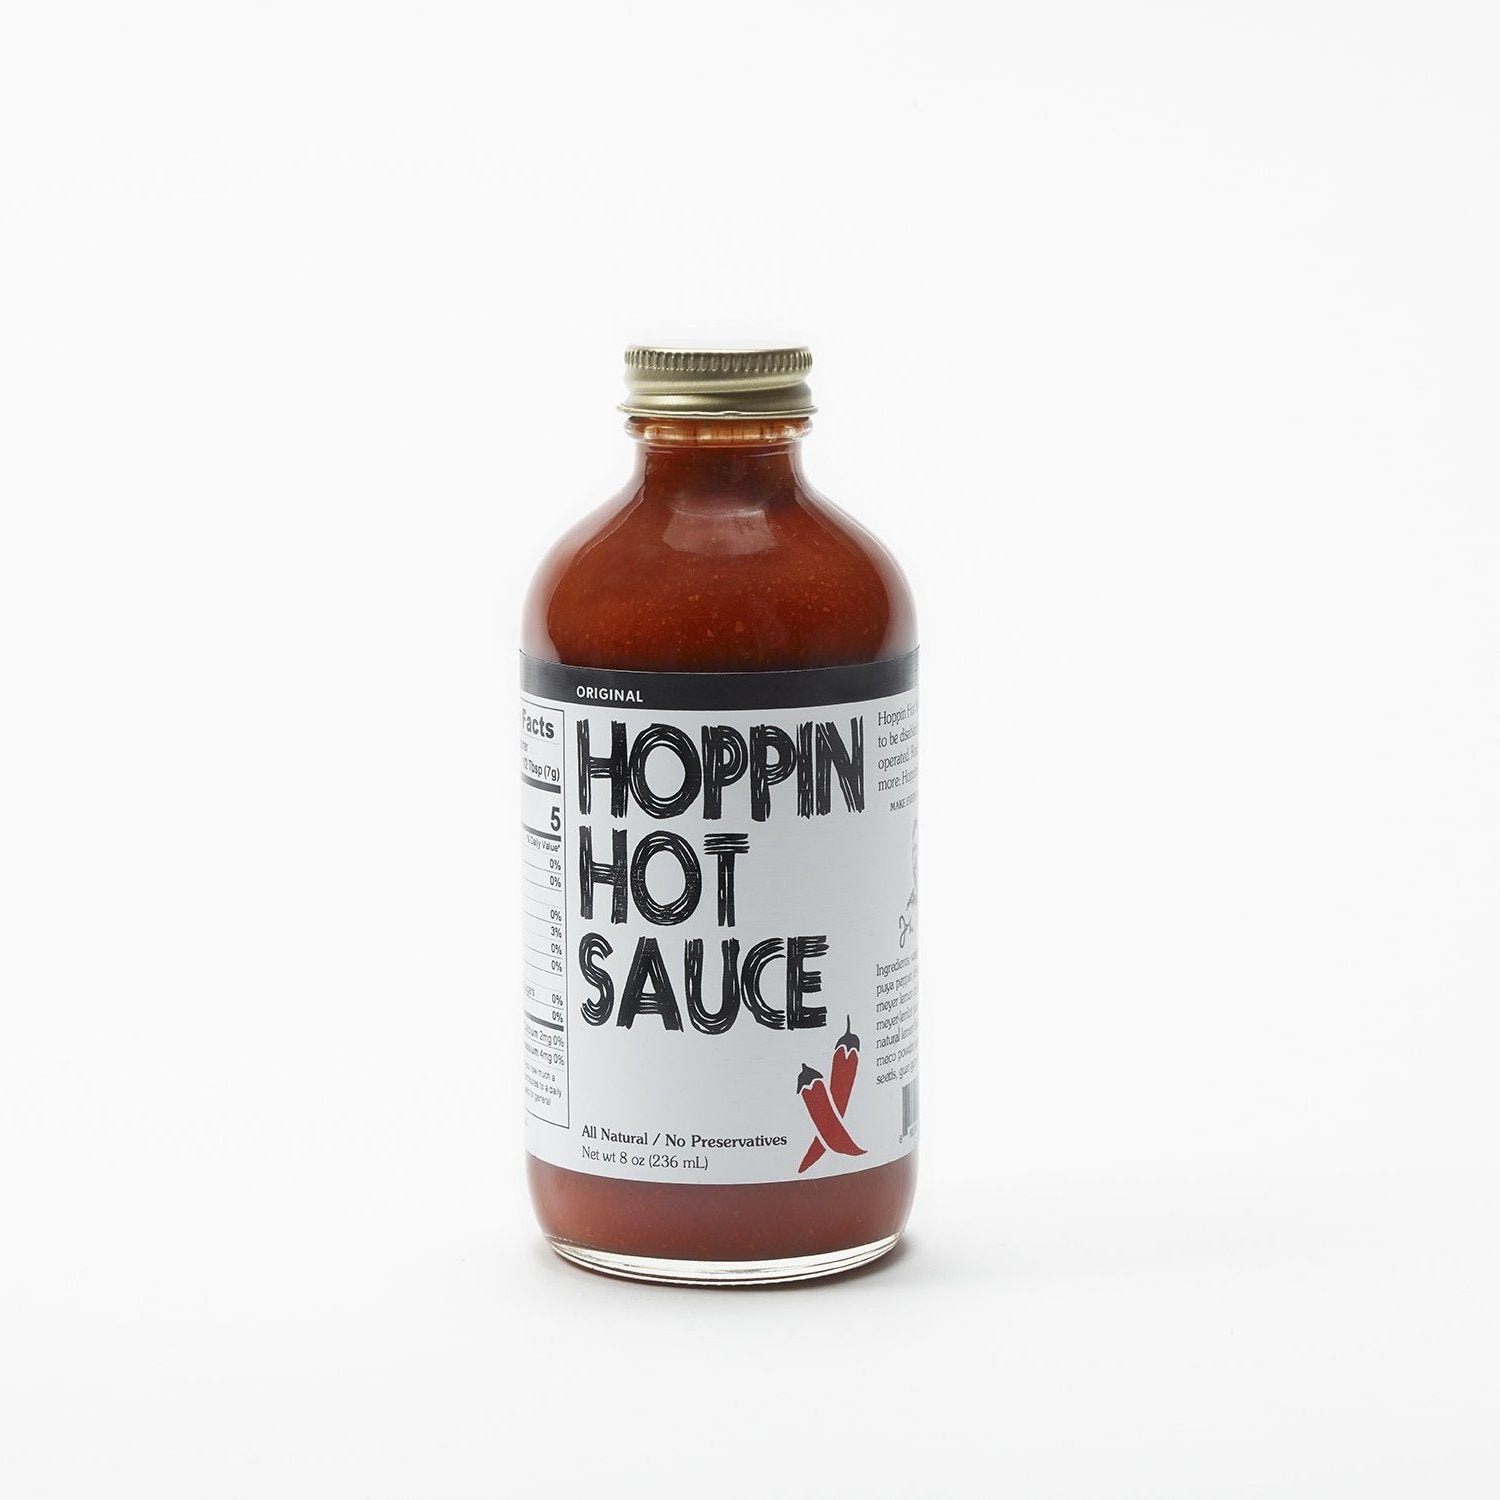 Hoppin Hot Sauce Original Flavor, 8oz